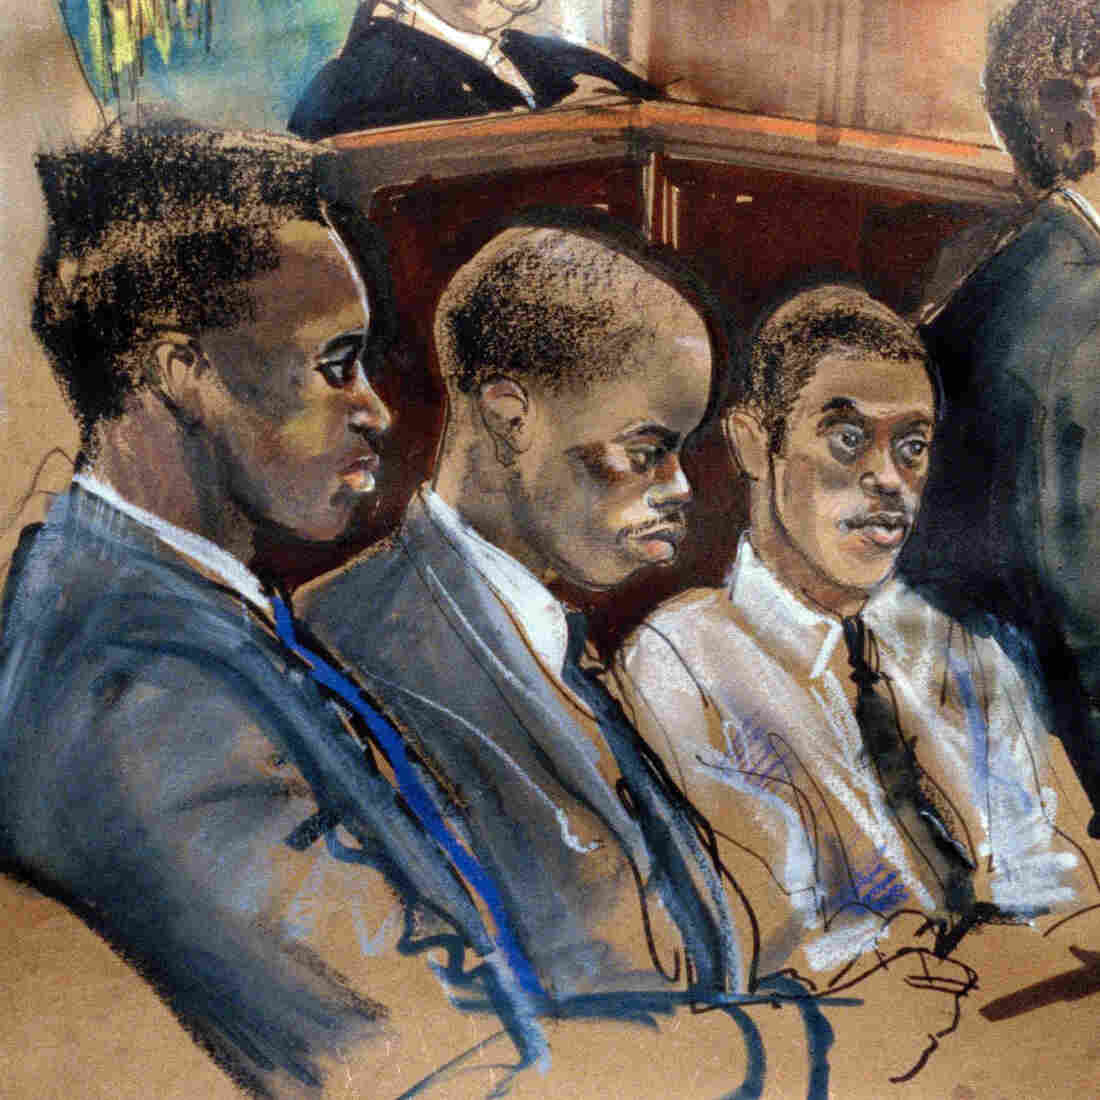 Opening statements are delivered in June 1990 in the Central Park rape trial in New York in this artist's rendering. The defendants — including Yusef Salaam (from left), Antron McCray and Raymond Santana, shown here — were convicted and imprisoned in part on what were later found to be false confessions. A new study shows it's surprisingly easy to implant memories of committing a crime.